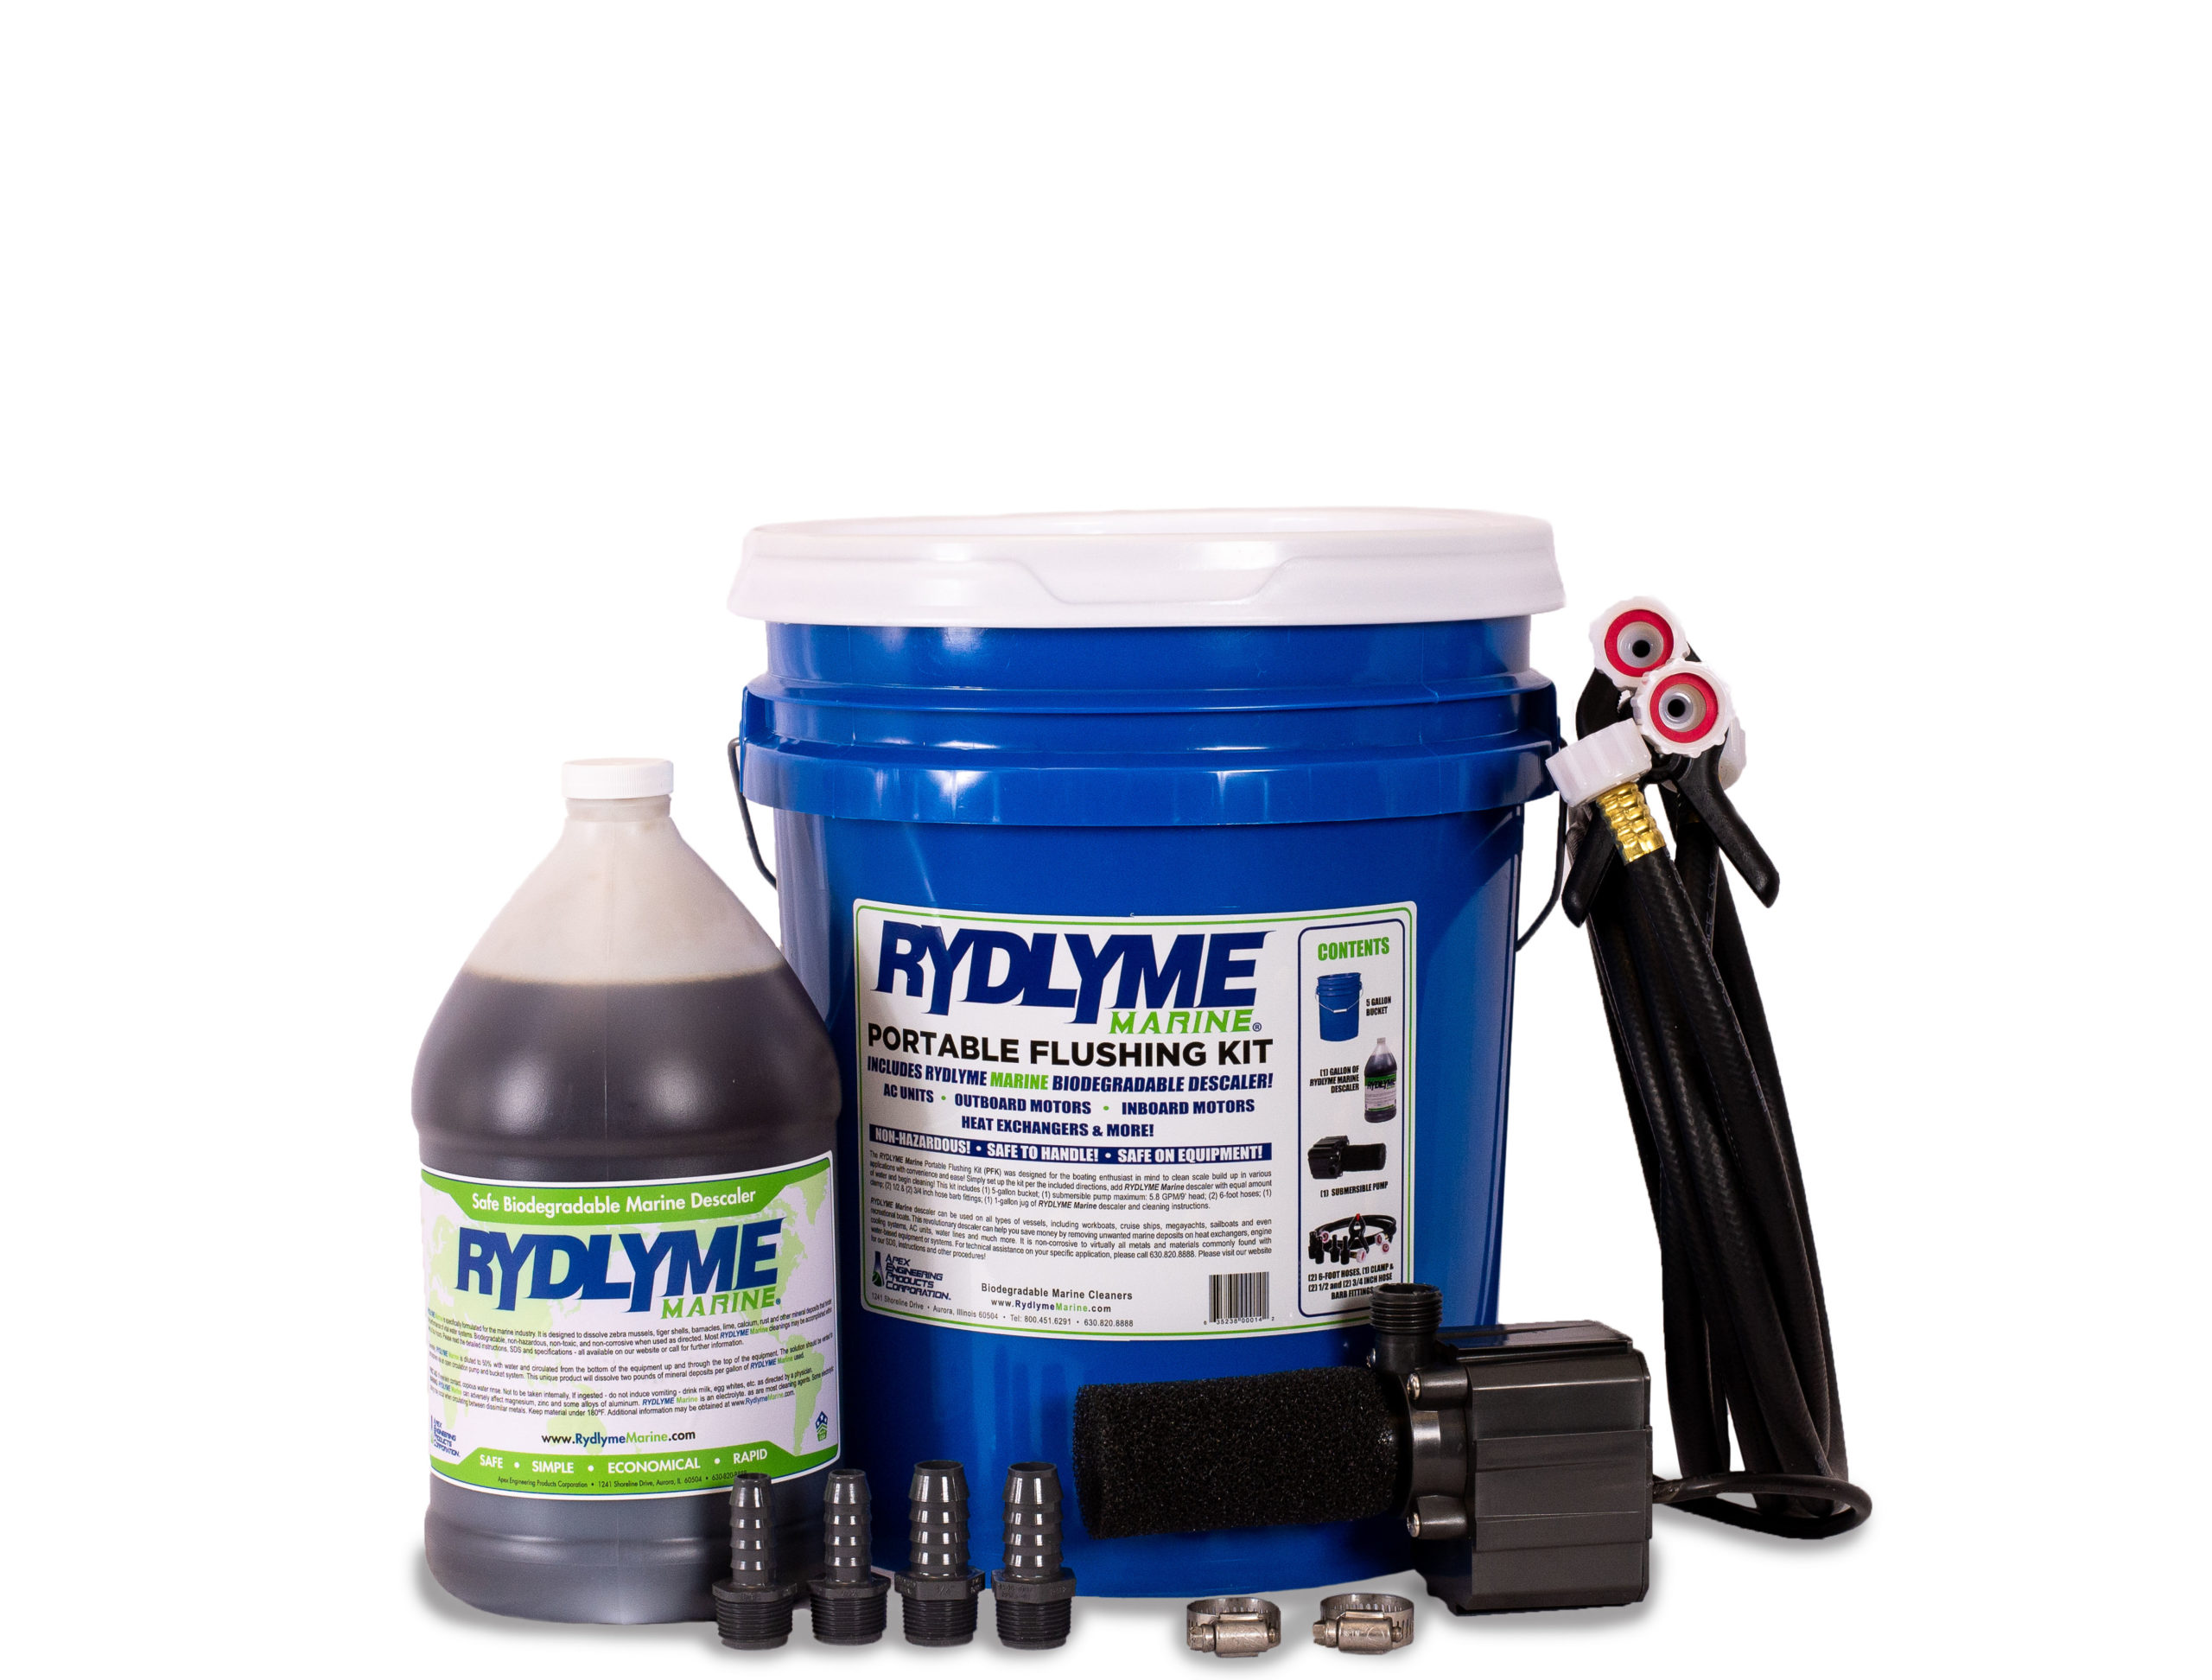 RYDLYME Marine Portable Flushing Kit